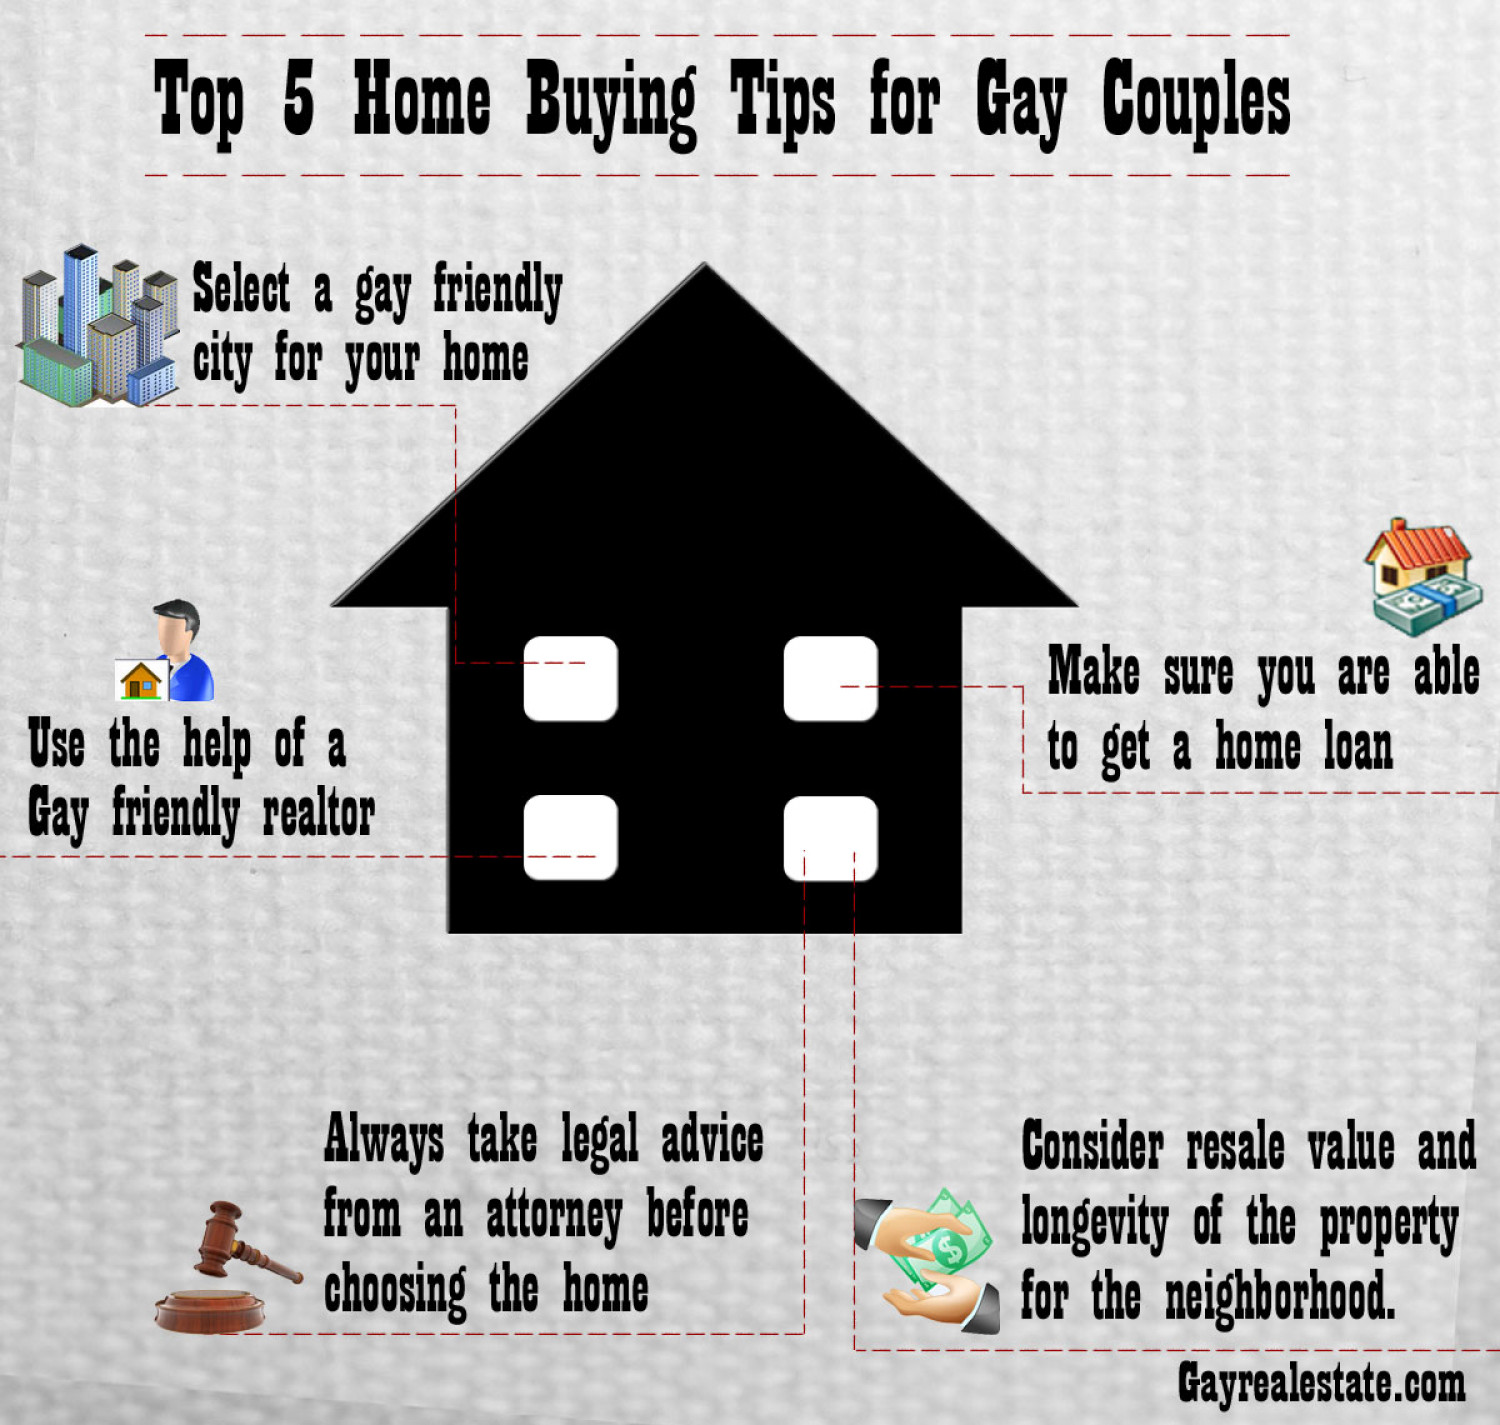 Home Theater Buying Tips: Top 5 Home Buying Tips For Gay Couples